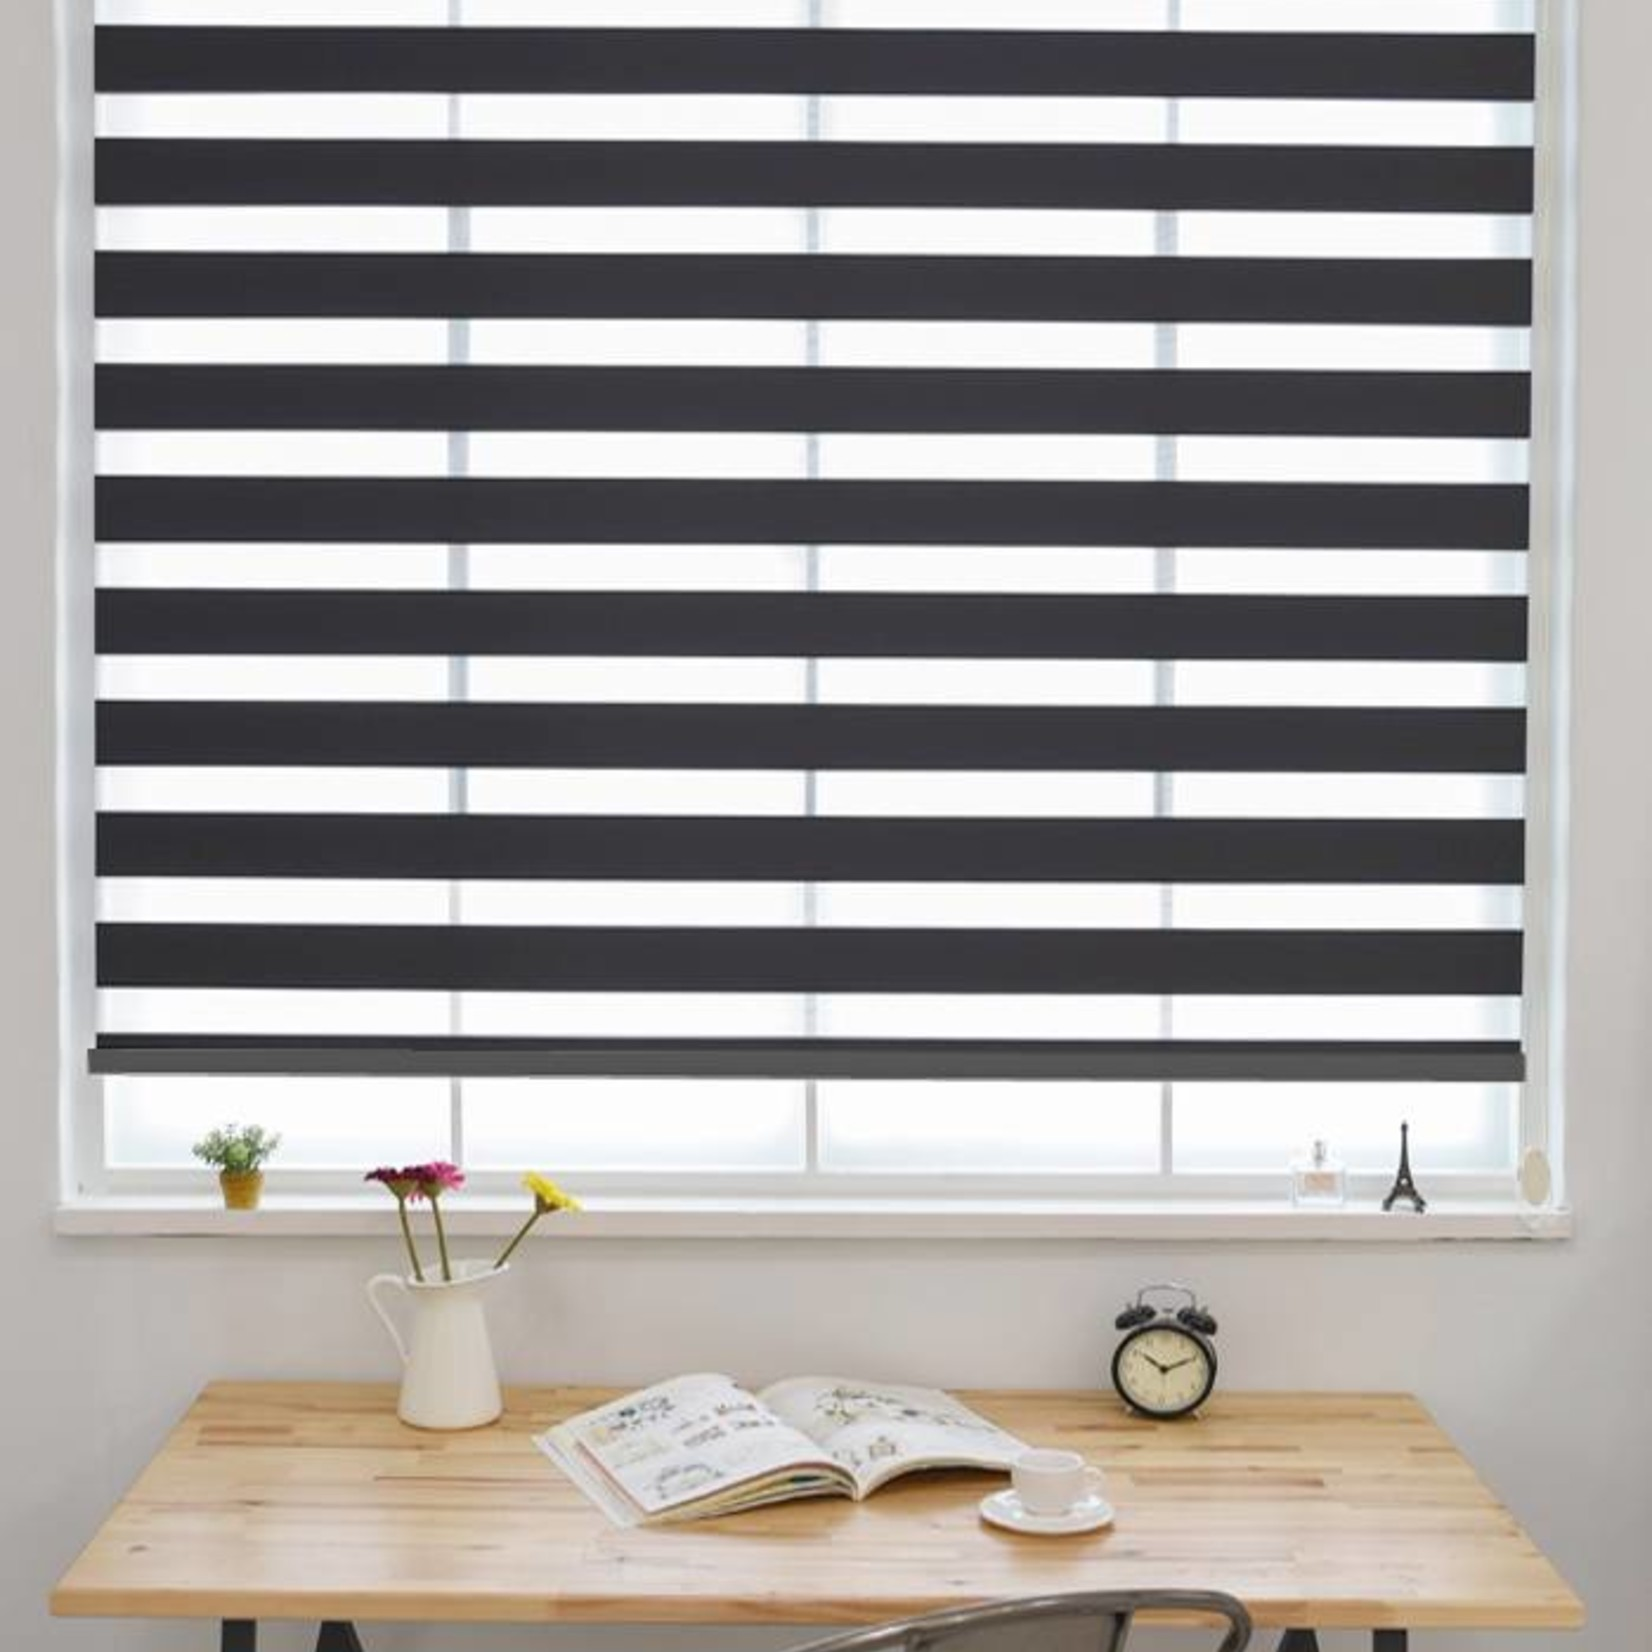 Trendy Blinds Combi Plain Zebra